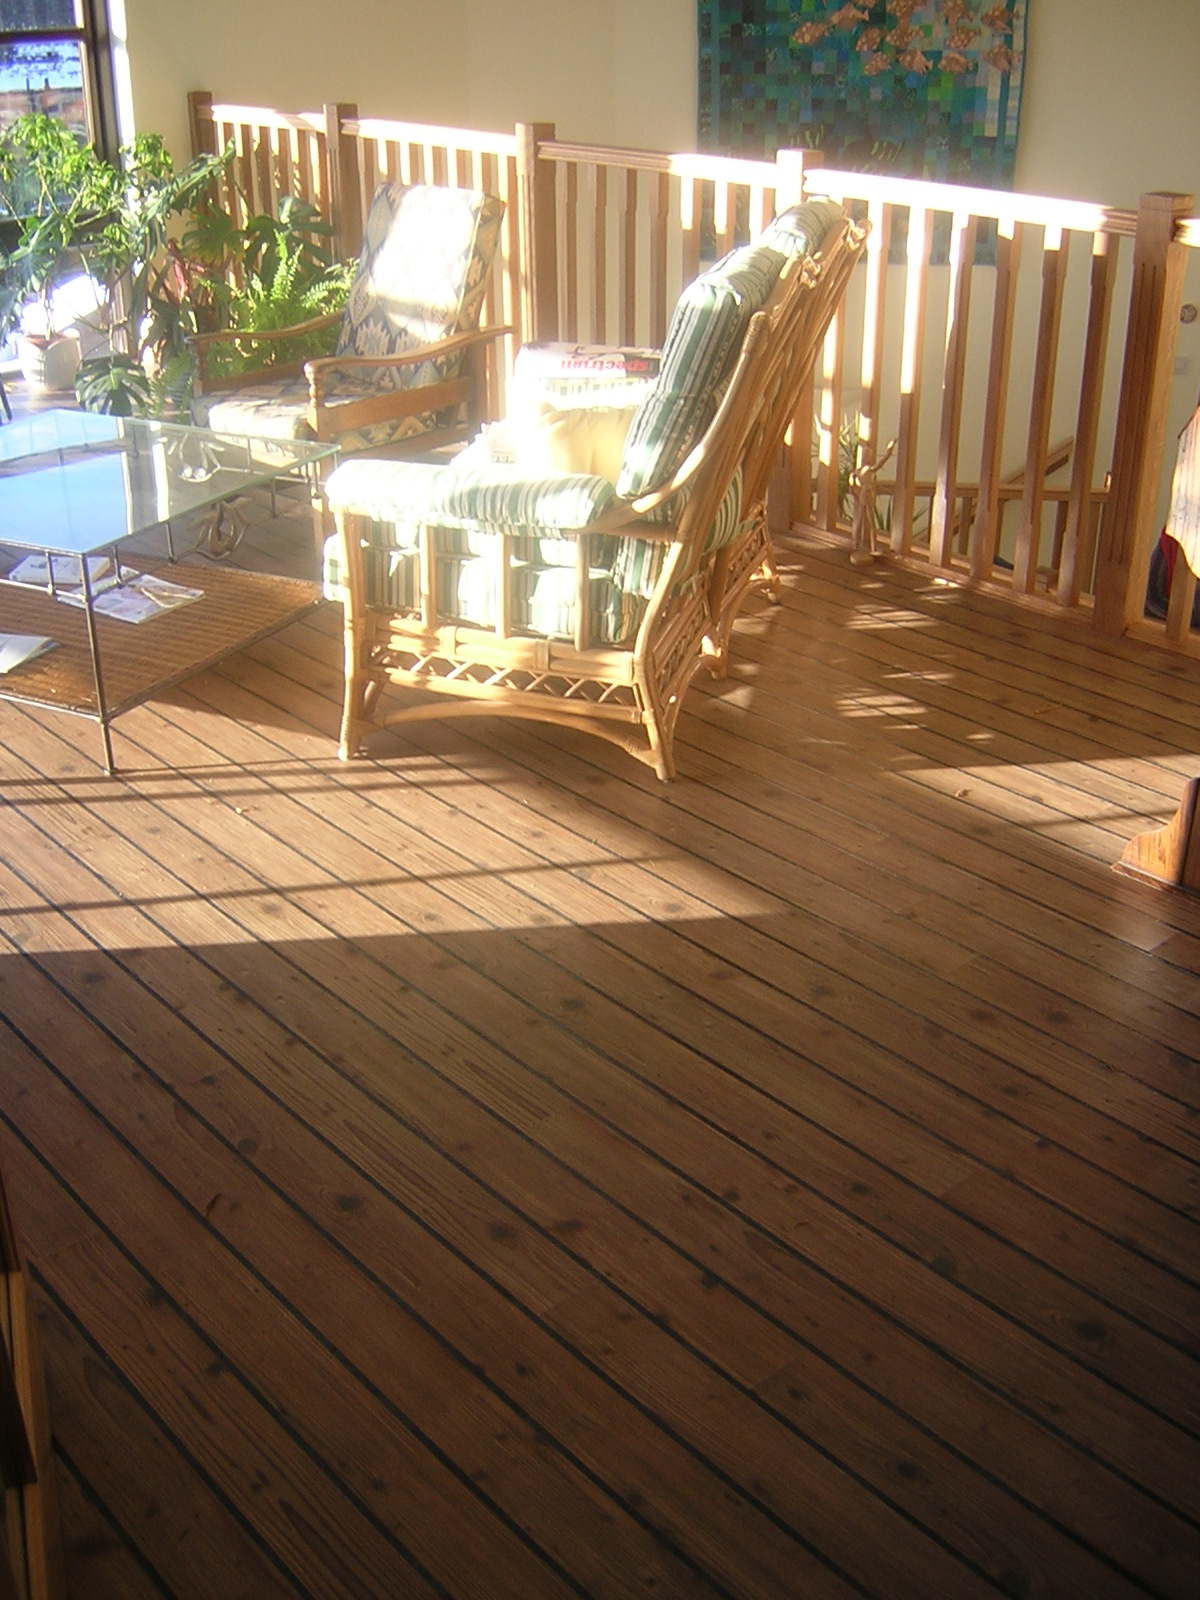 karndean woodplank with decking effect stripping